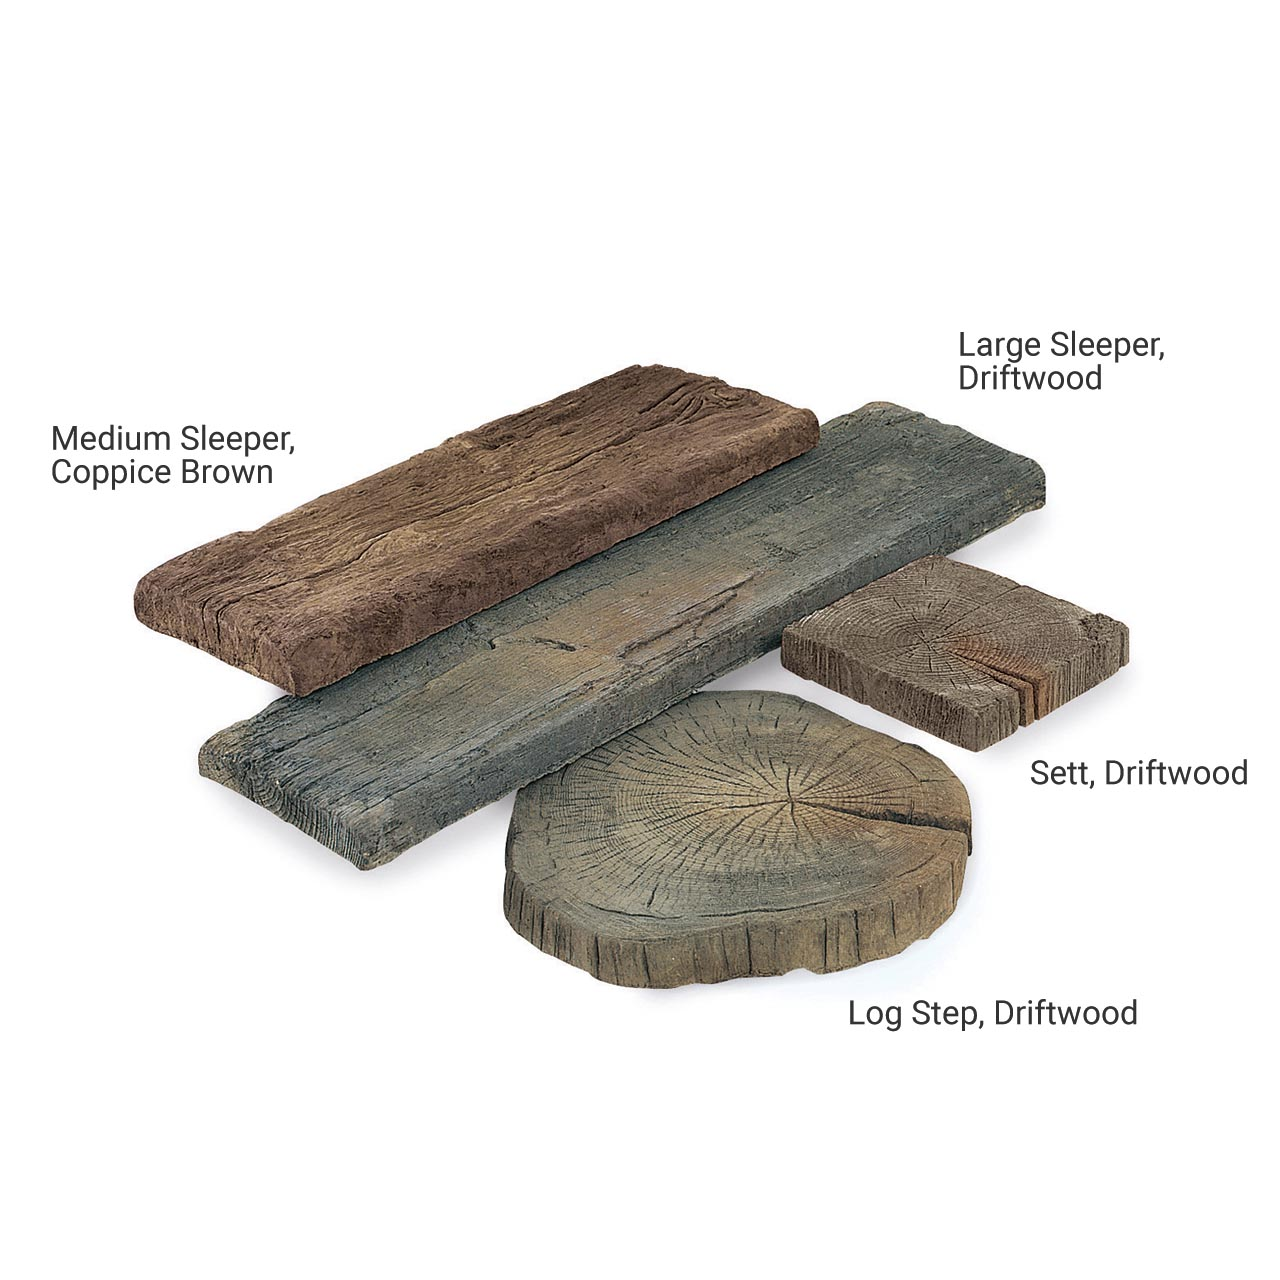 Timberstone Sett 225mm x 225mm x 50mm Coppice Brown image 0